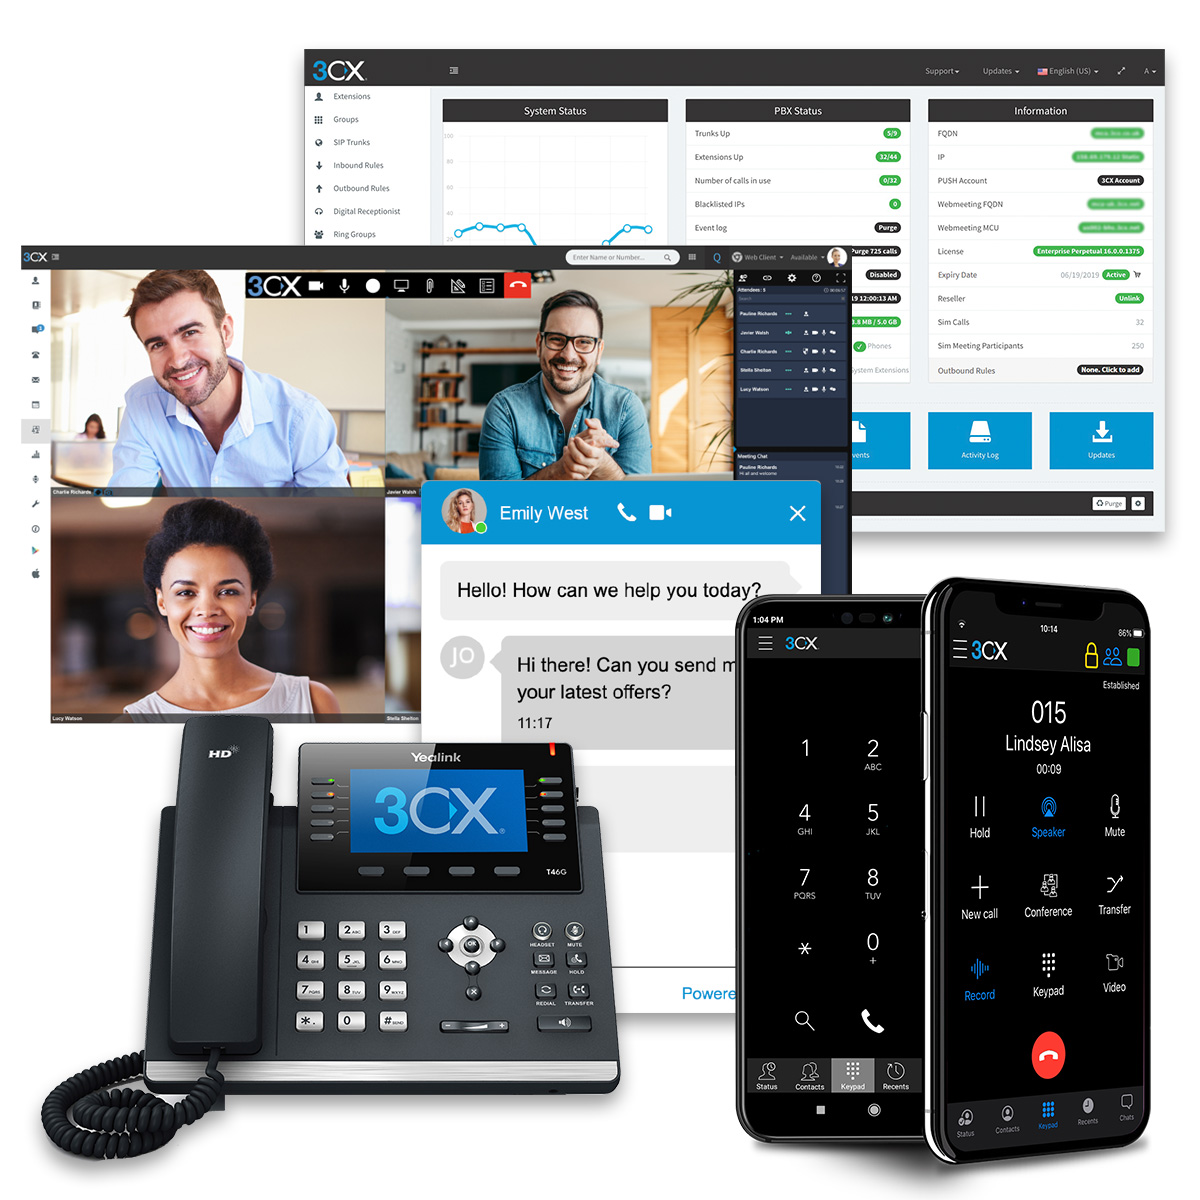 3CX voip providers - the best VoIP technology and functionality